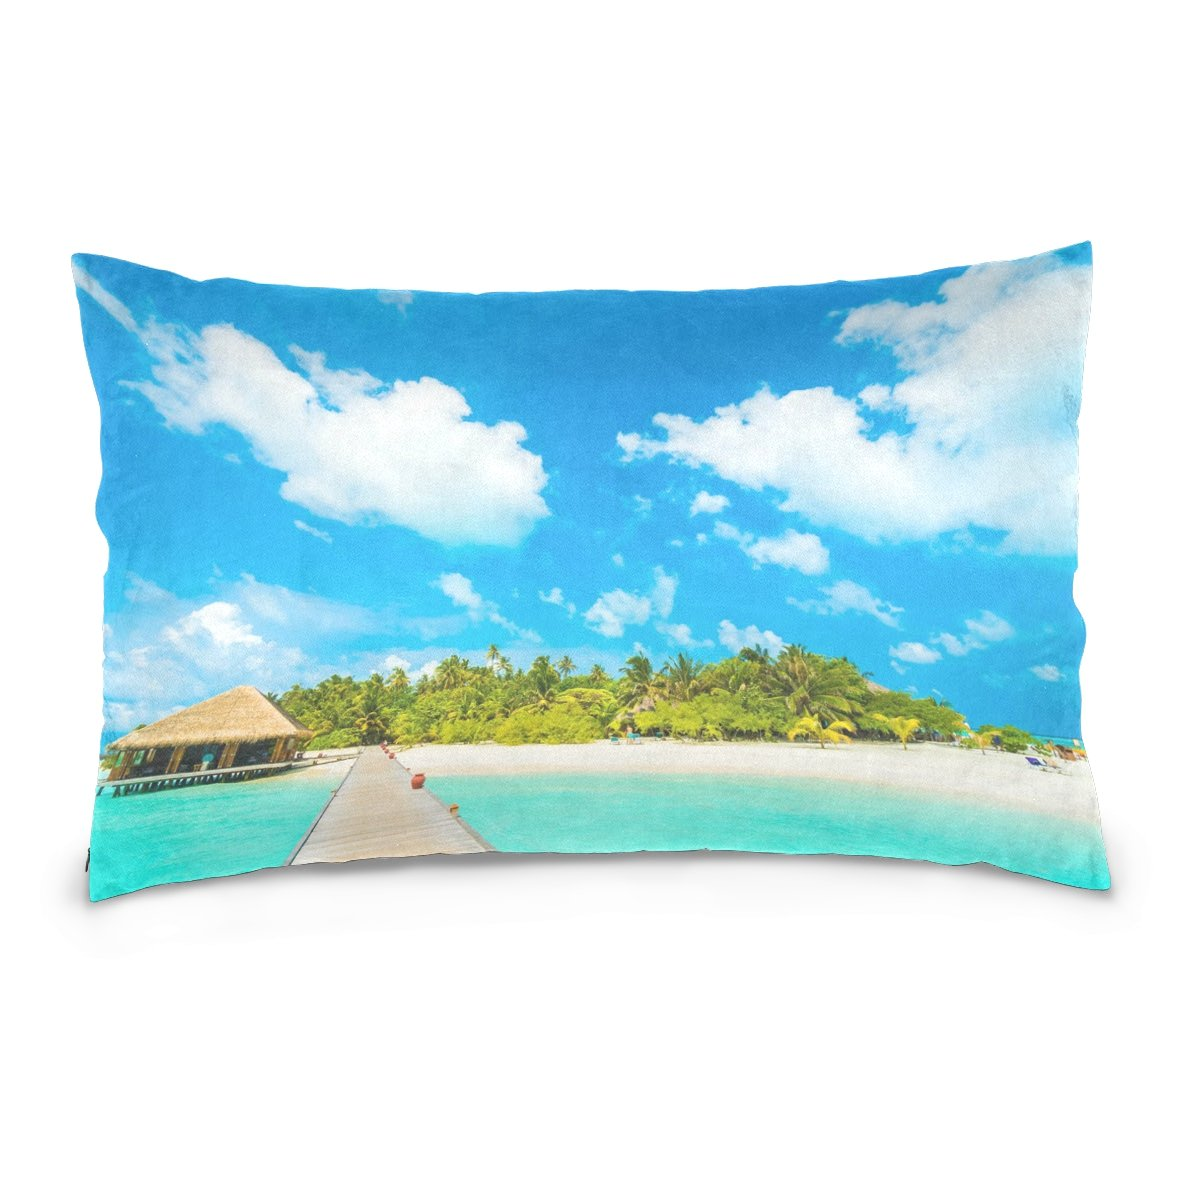 ALAZA Beautiful Tropical Maldives Resort Hotel Cotton Lint Pillow Case,Double-sided Printing Home Decor Pillowcase Size 16''x24'',for Bedroom Women Girl Boy